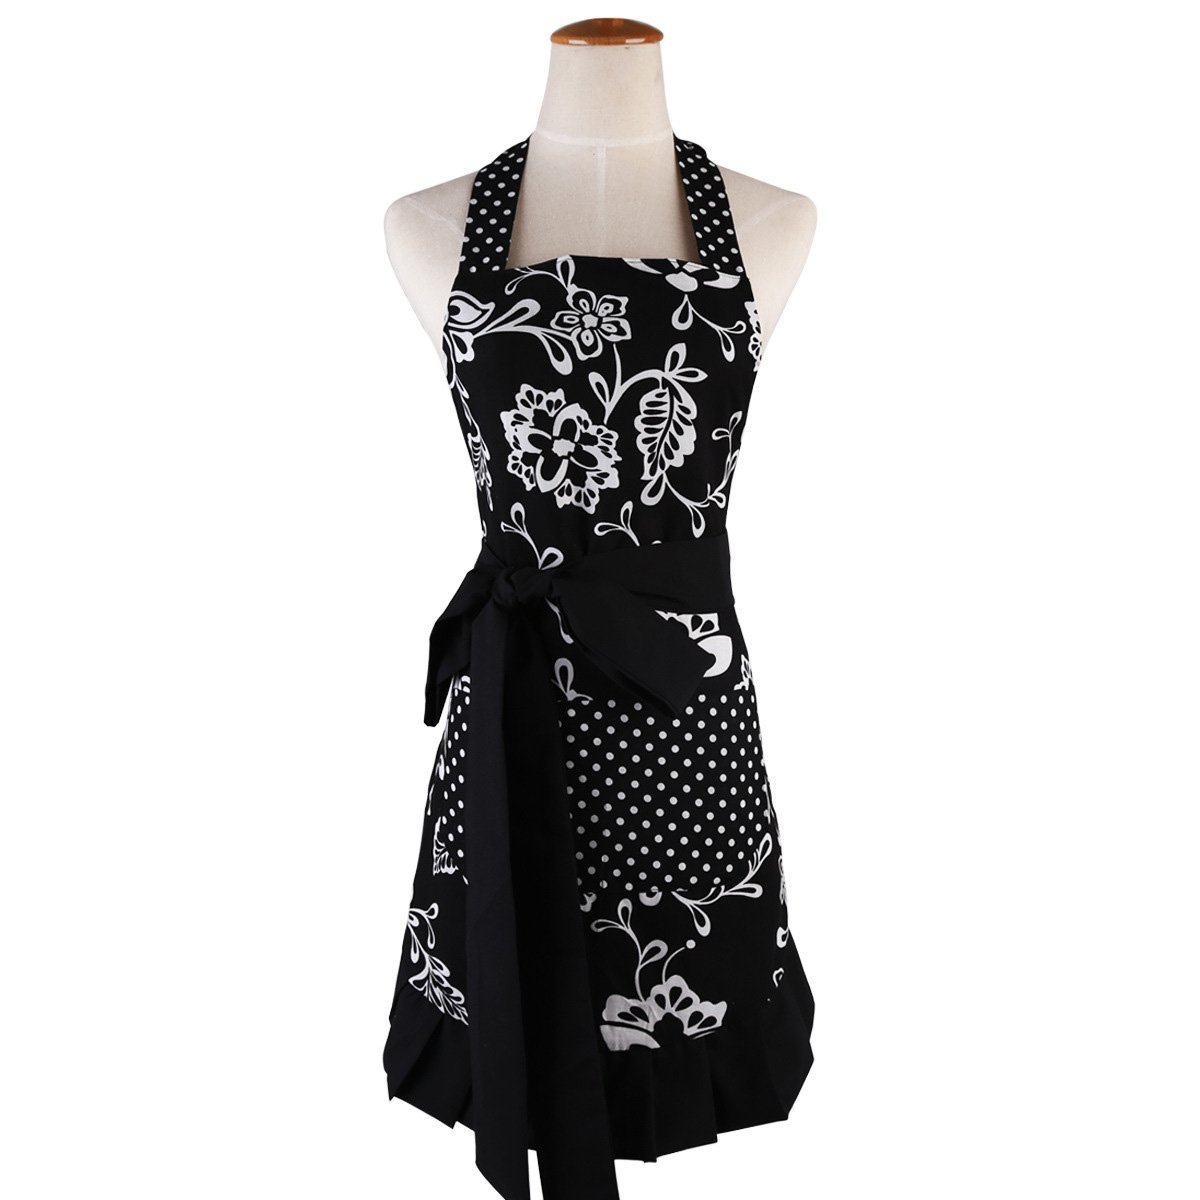 Black Aprons for Women with Pockets,Extra-Long Tie,Home Baking Gardening or Kitchen Cooking Bib,Graceful and Flirty Retro Cute Cotton Plus Size Apron 29 x 21Inch JIURUN